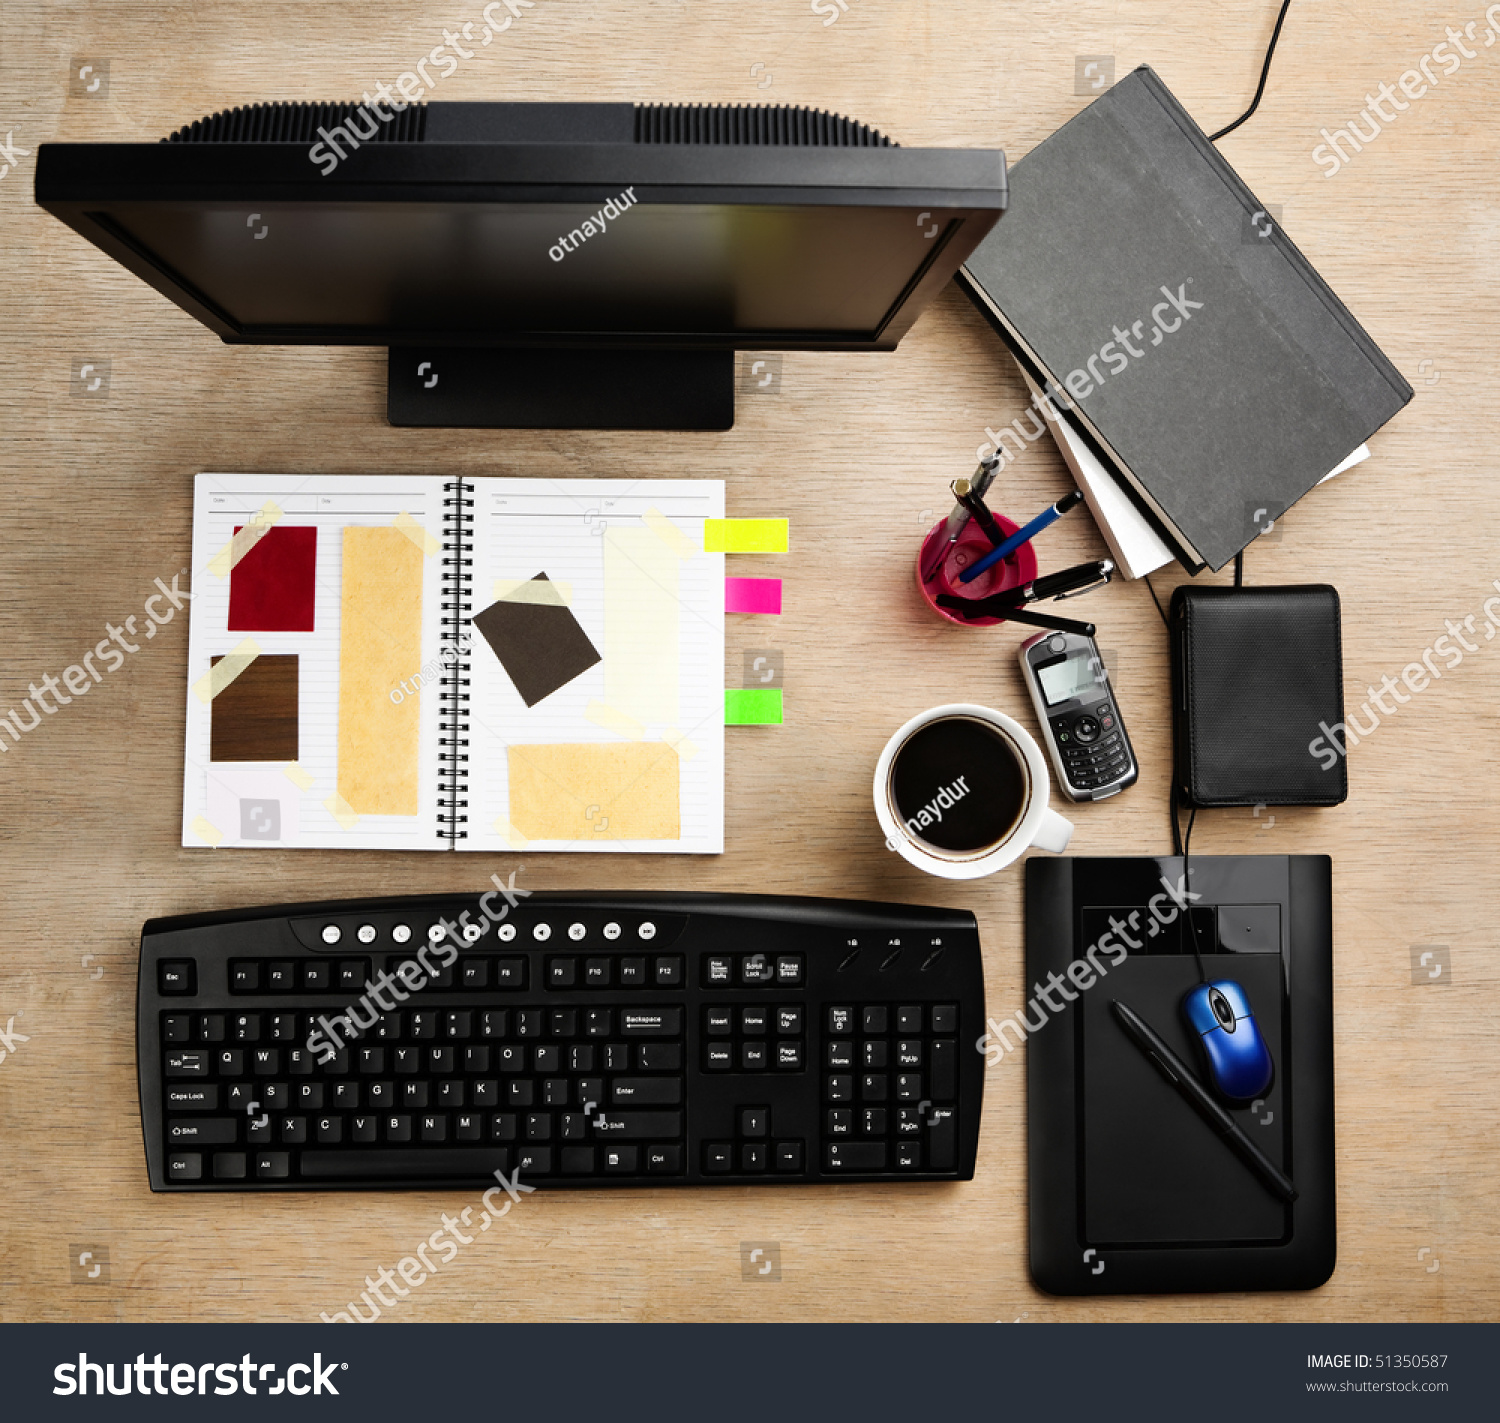 How to scrapbook on the computer